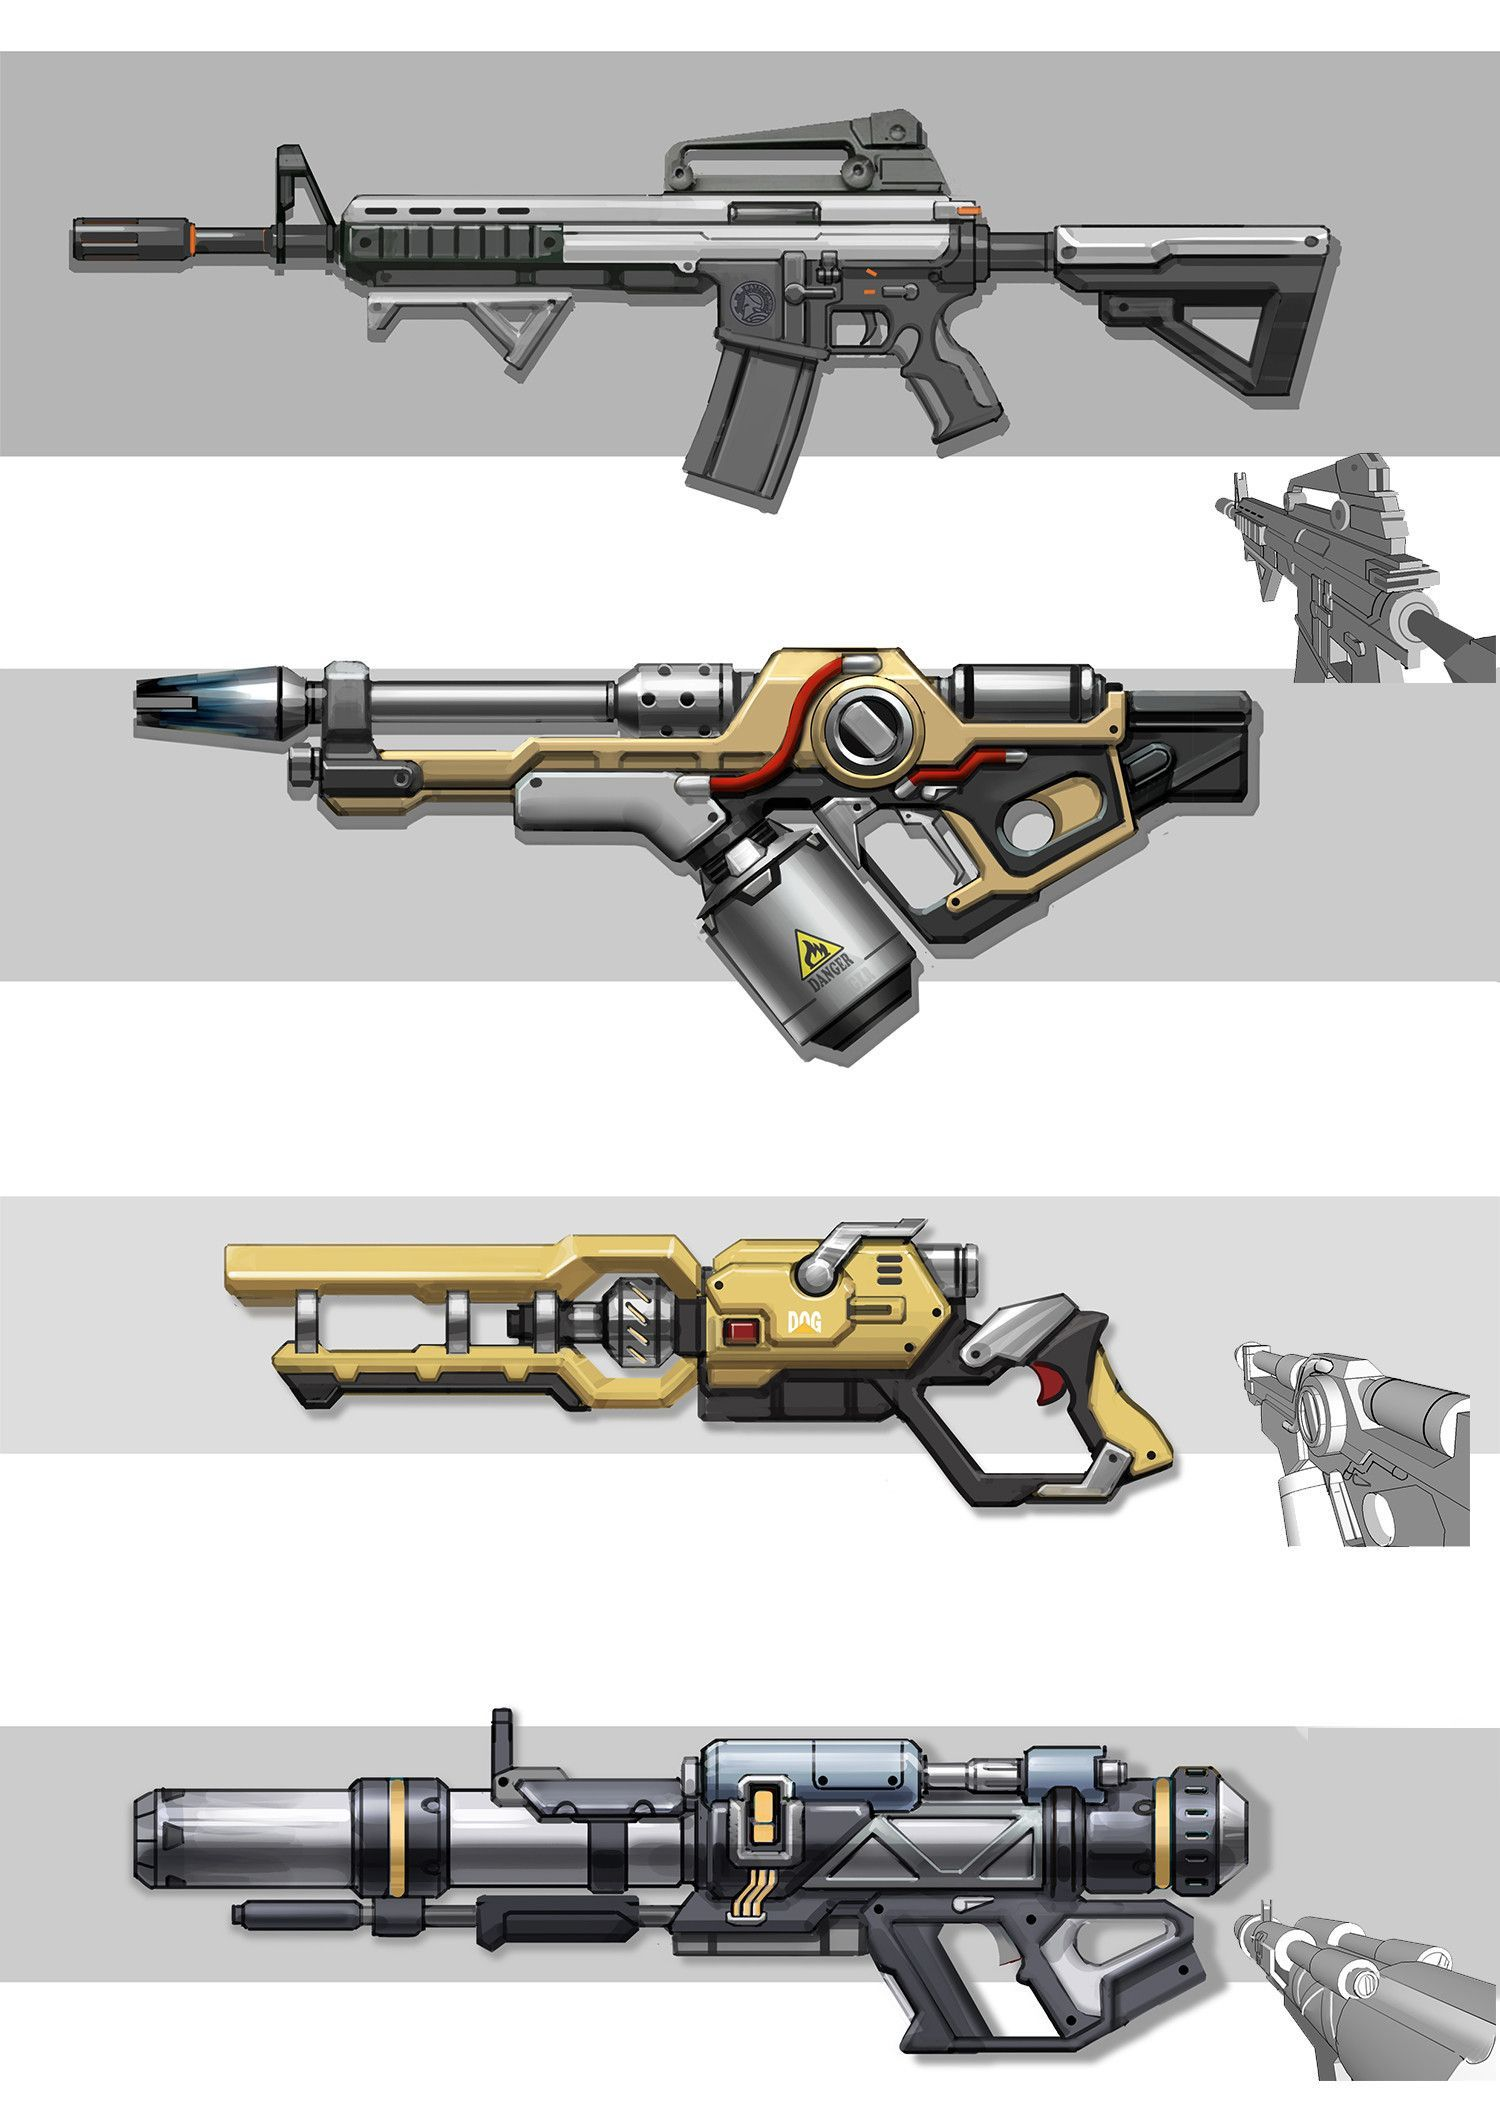 Crossbow Concept Crossbow Tips Crossbow Hunter Crossbow Rack Crossbow Target Crossbowconcept Dessin Promarker Armes Arme